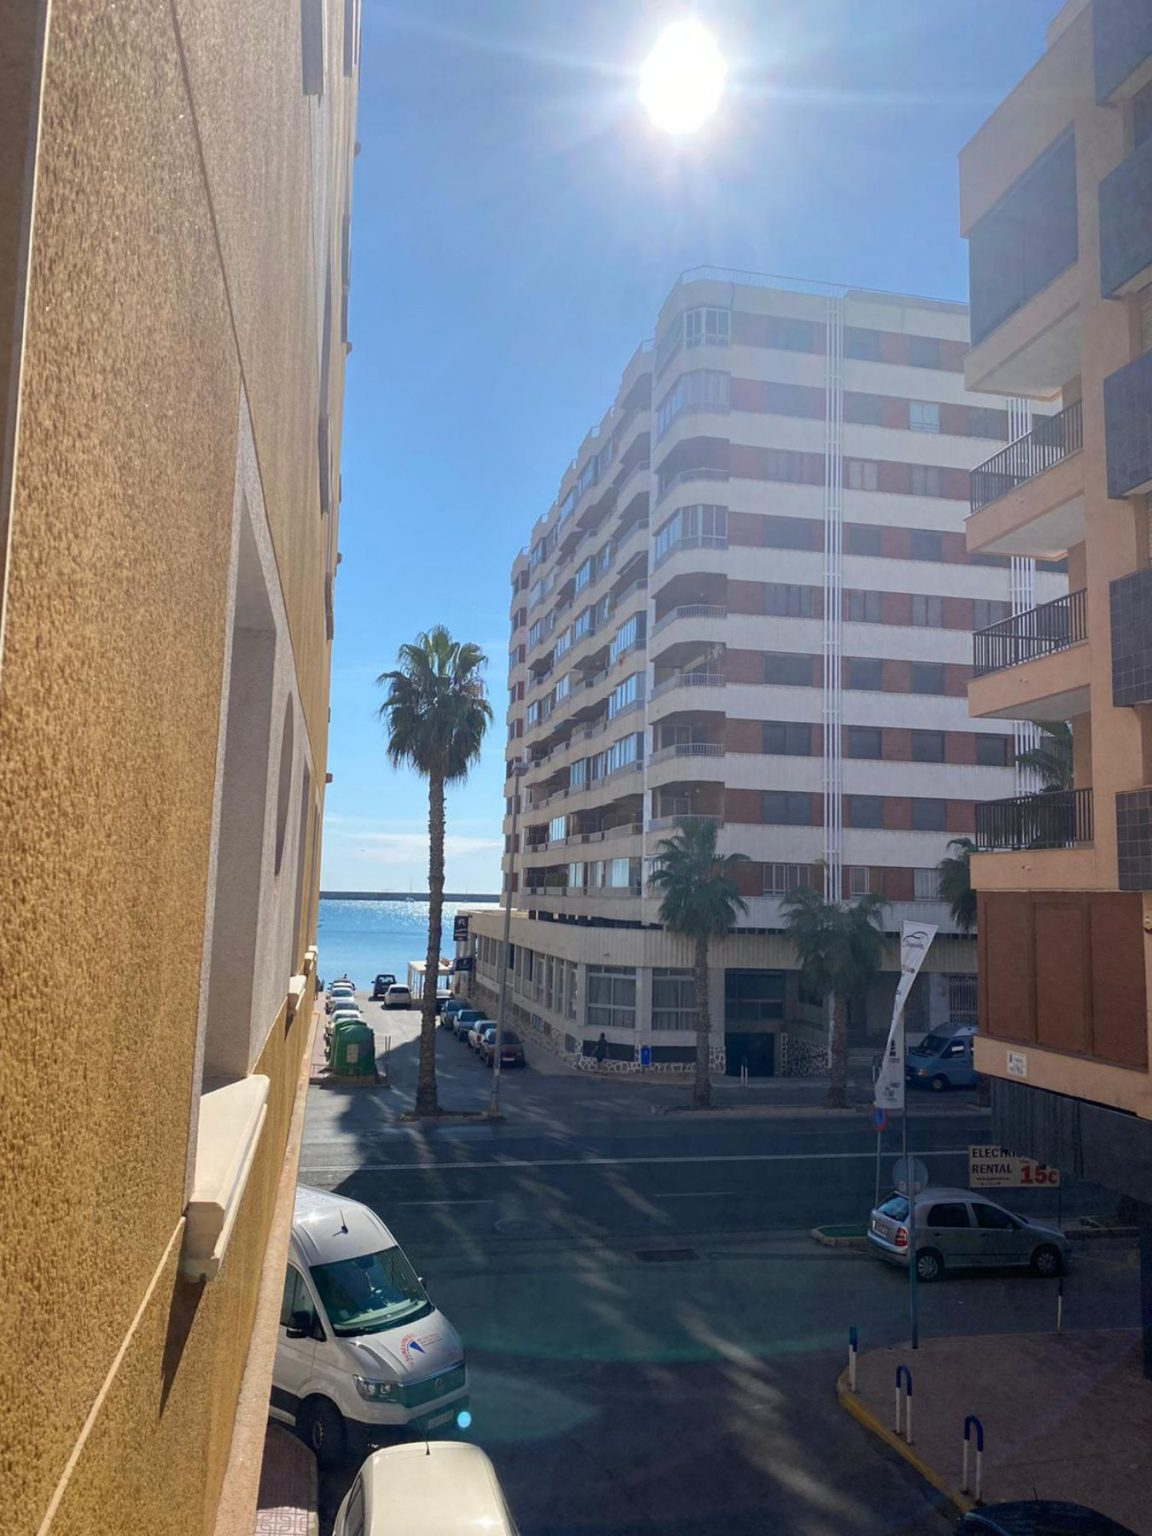 2 Bedrooms Apartment For Sale Just 50 Meters From Acequion Beach Torrevieja